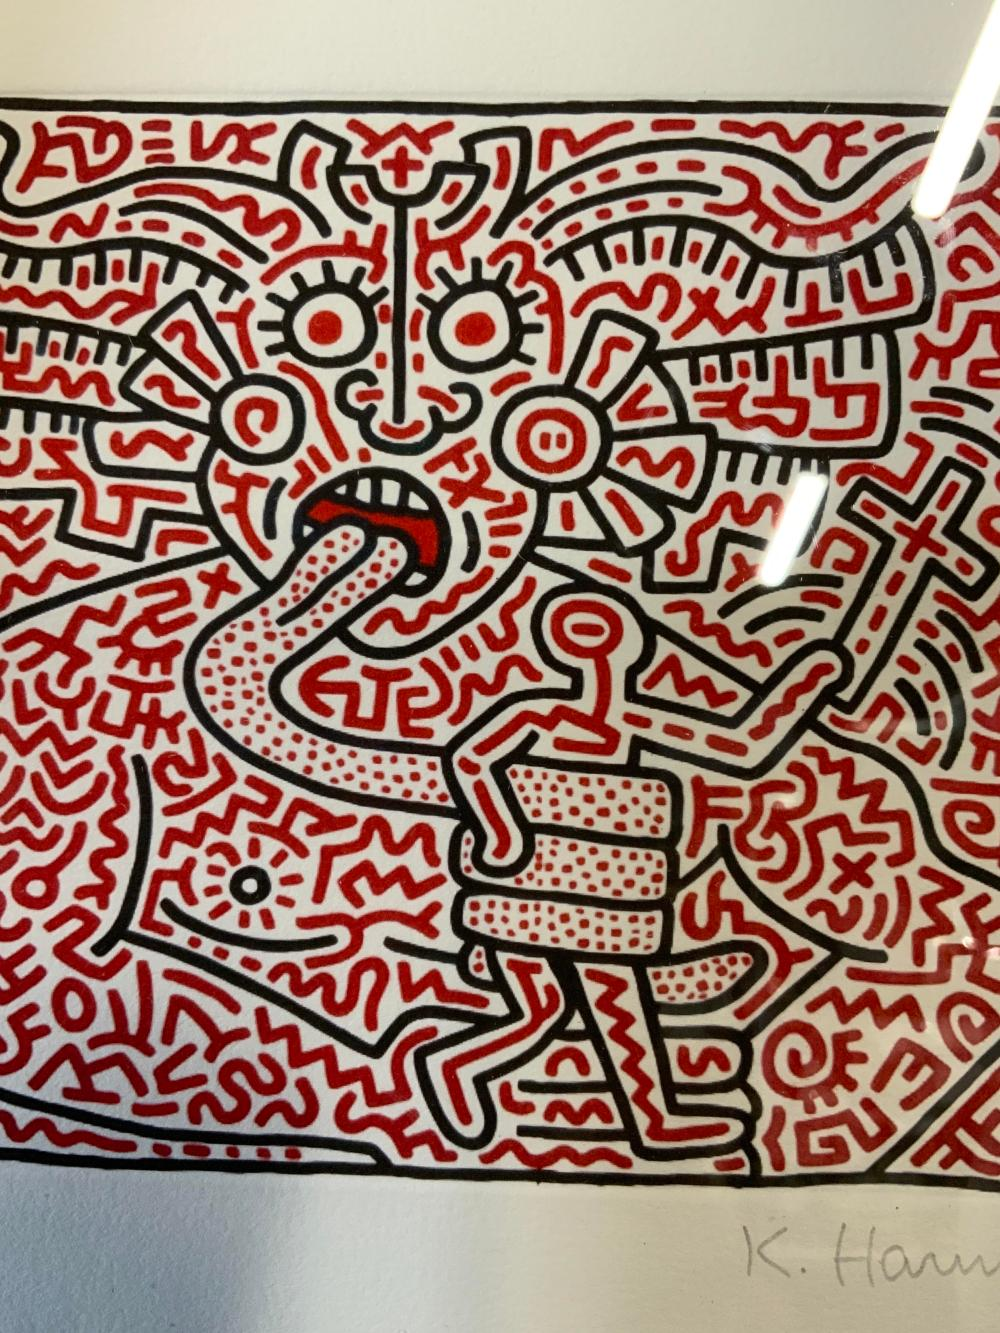 ATTR KEITH HARING Signed Lithograph